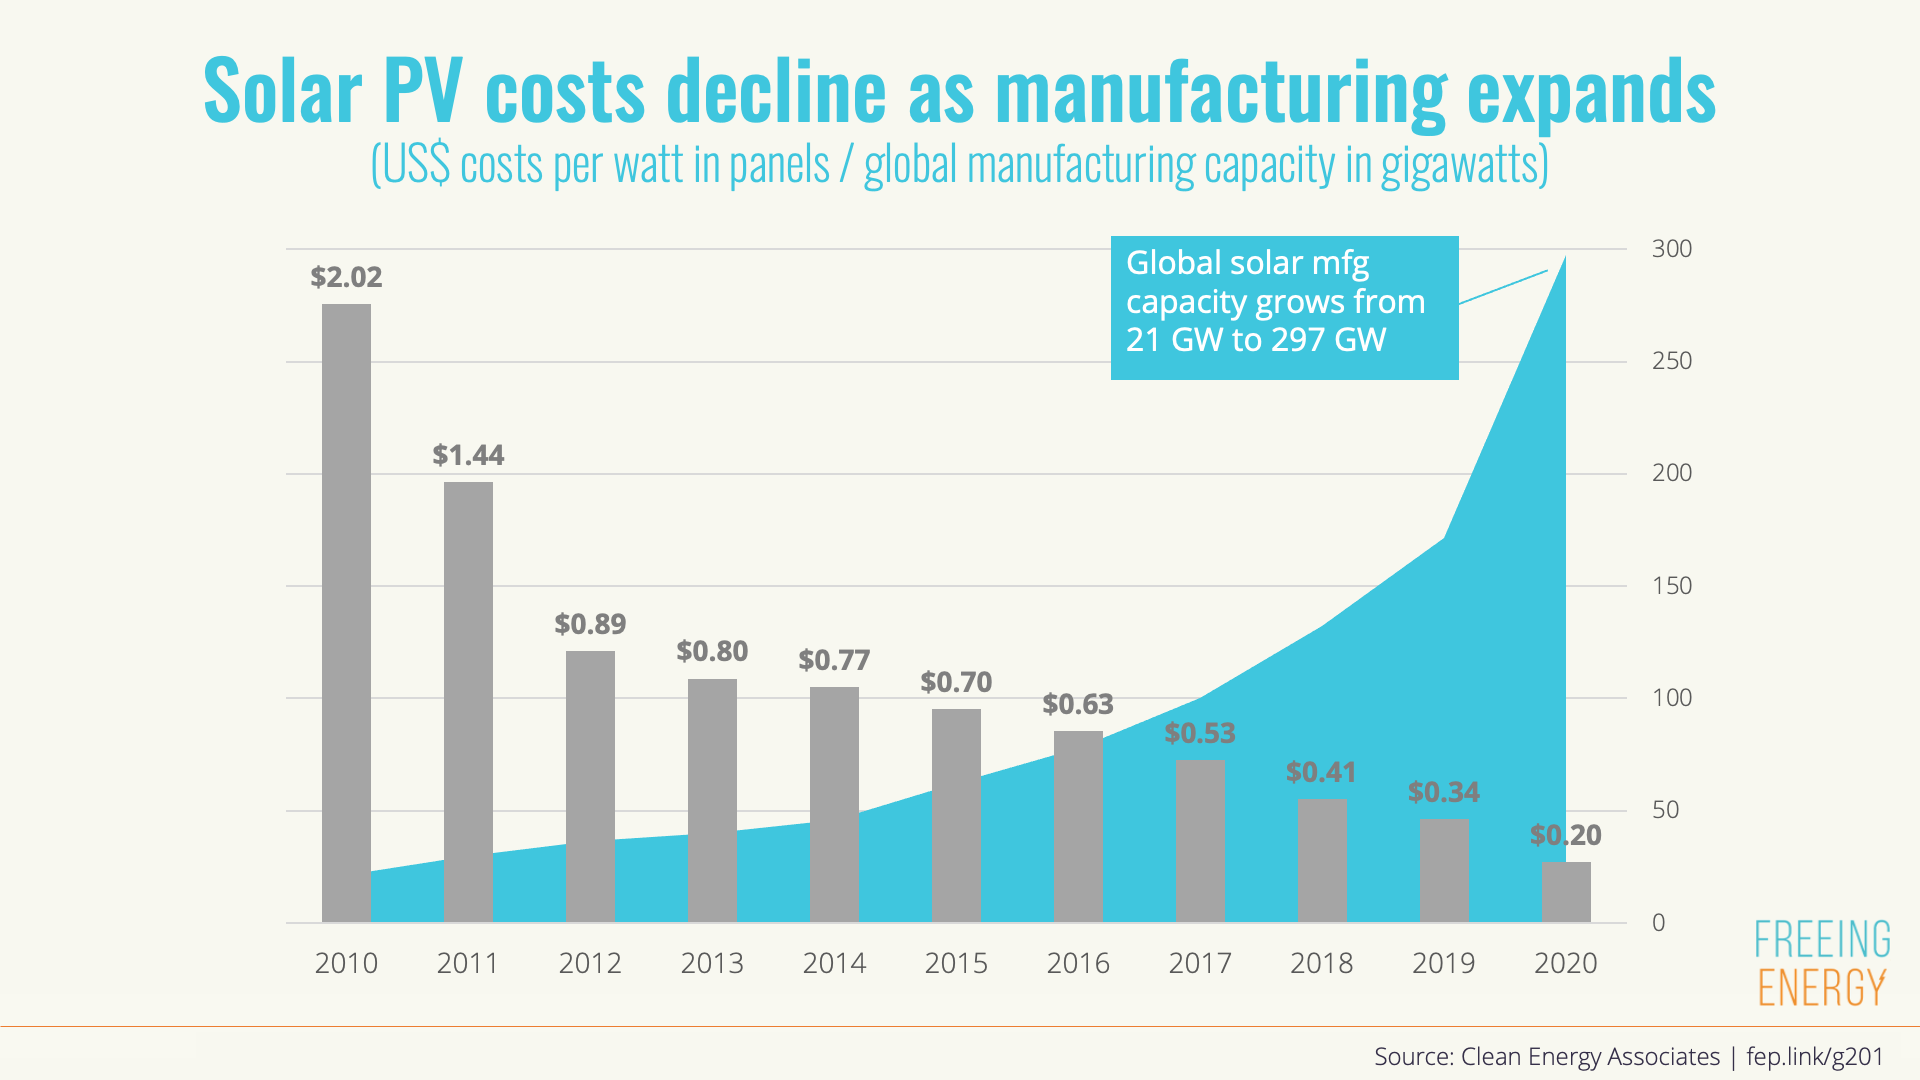 Solar PV costs decline as manufacturing expands